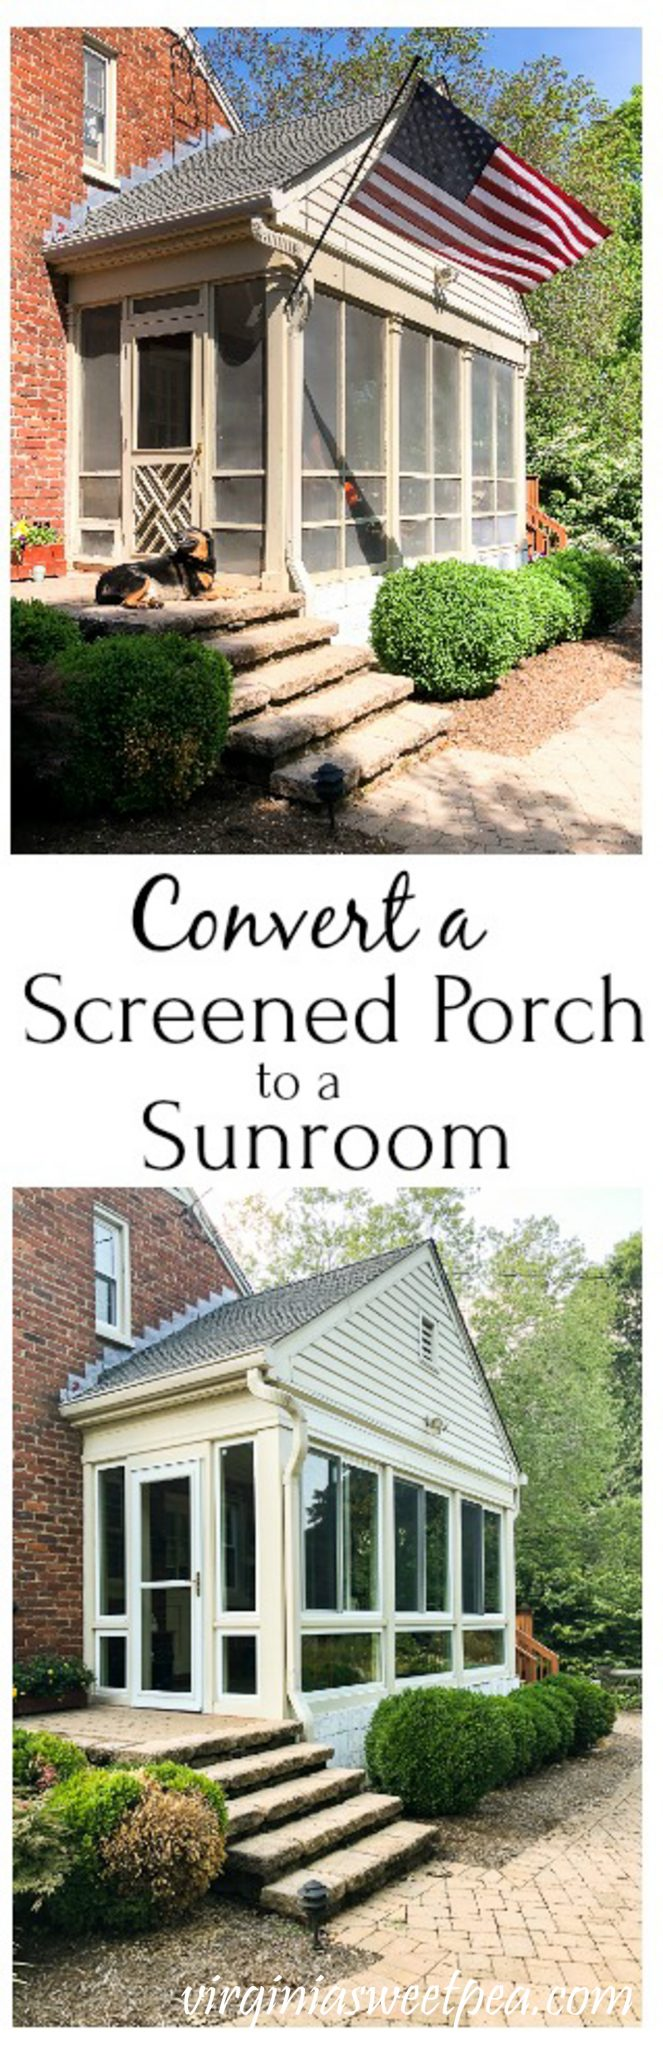 Converting a Screened Porch to a Sunroom - A 1950s screened porch is converted into a sunroom. via @spaula